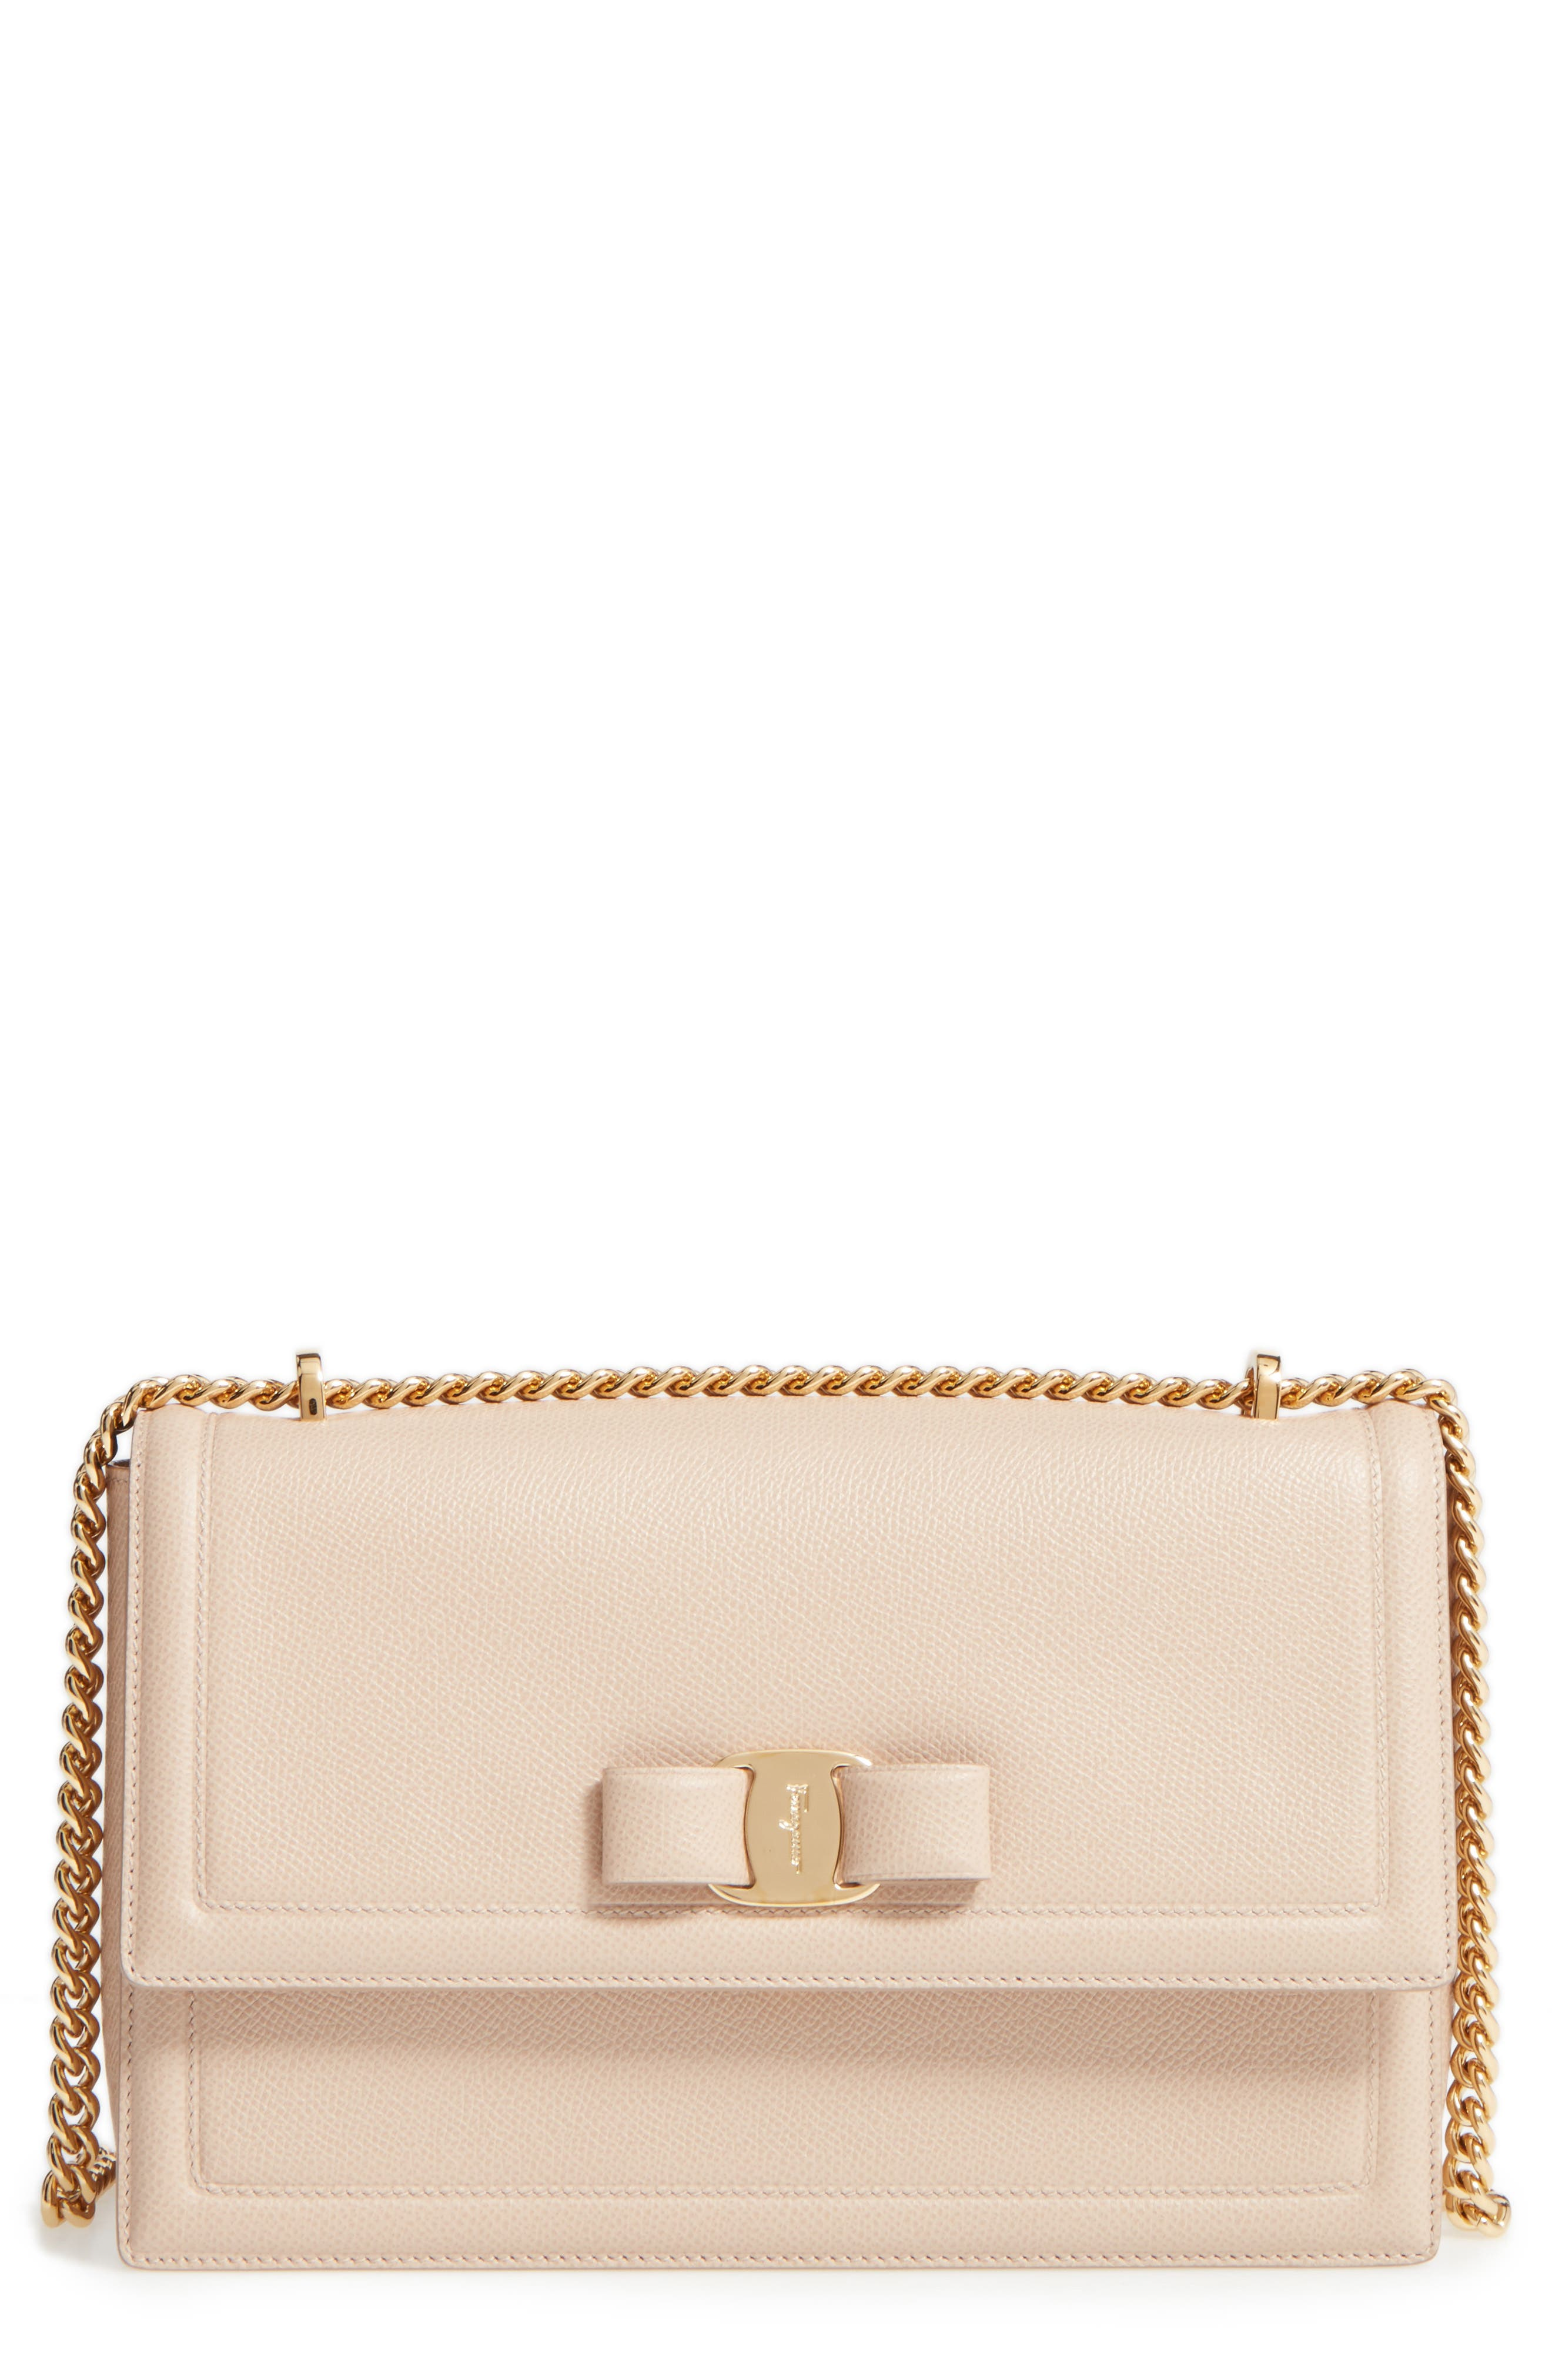 Salvatore Ferragamo Medium Ginny Leather Shoulder Bag